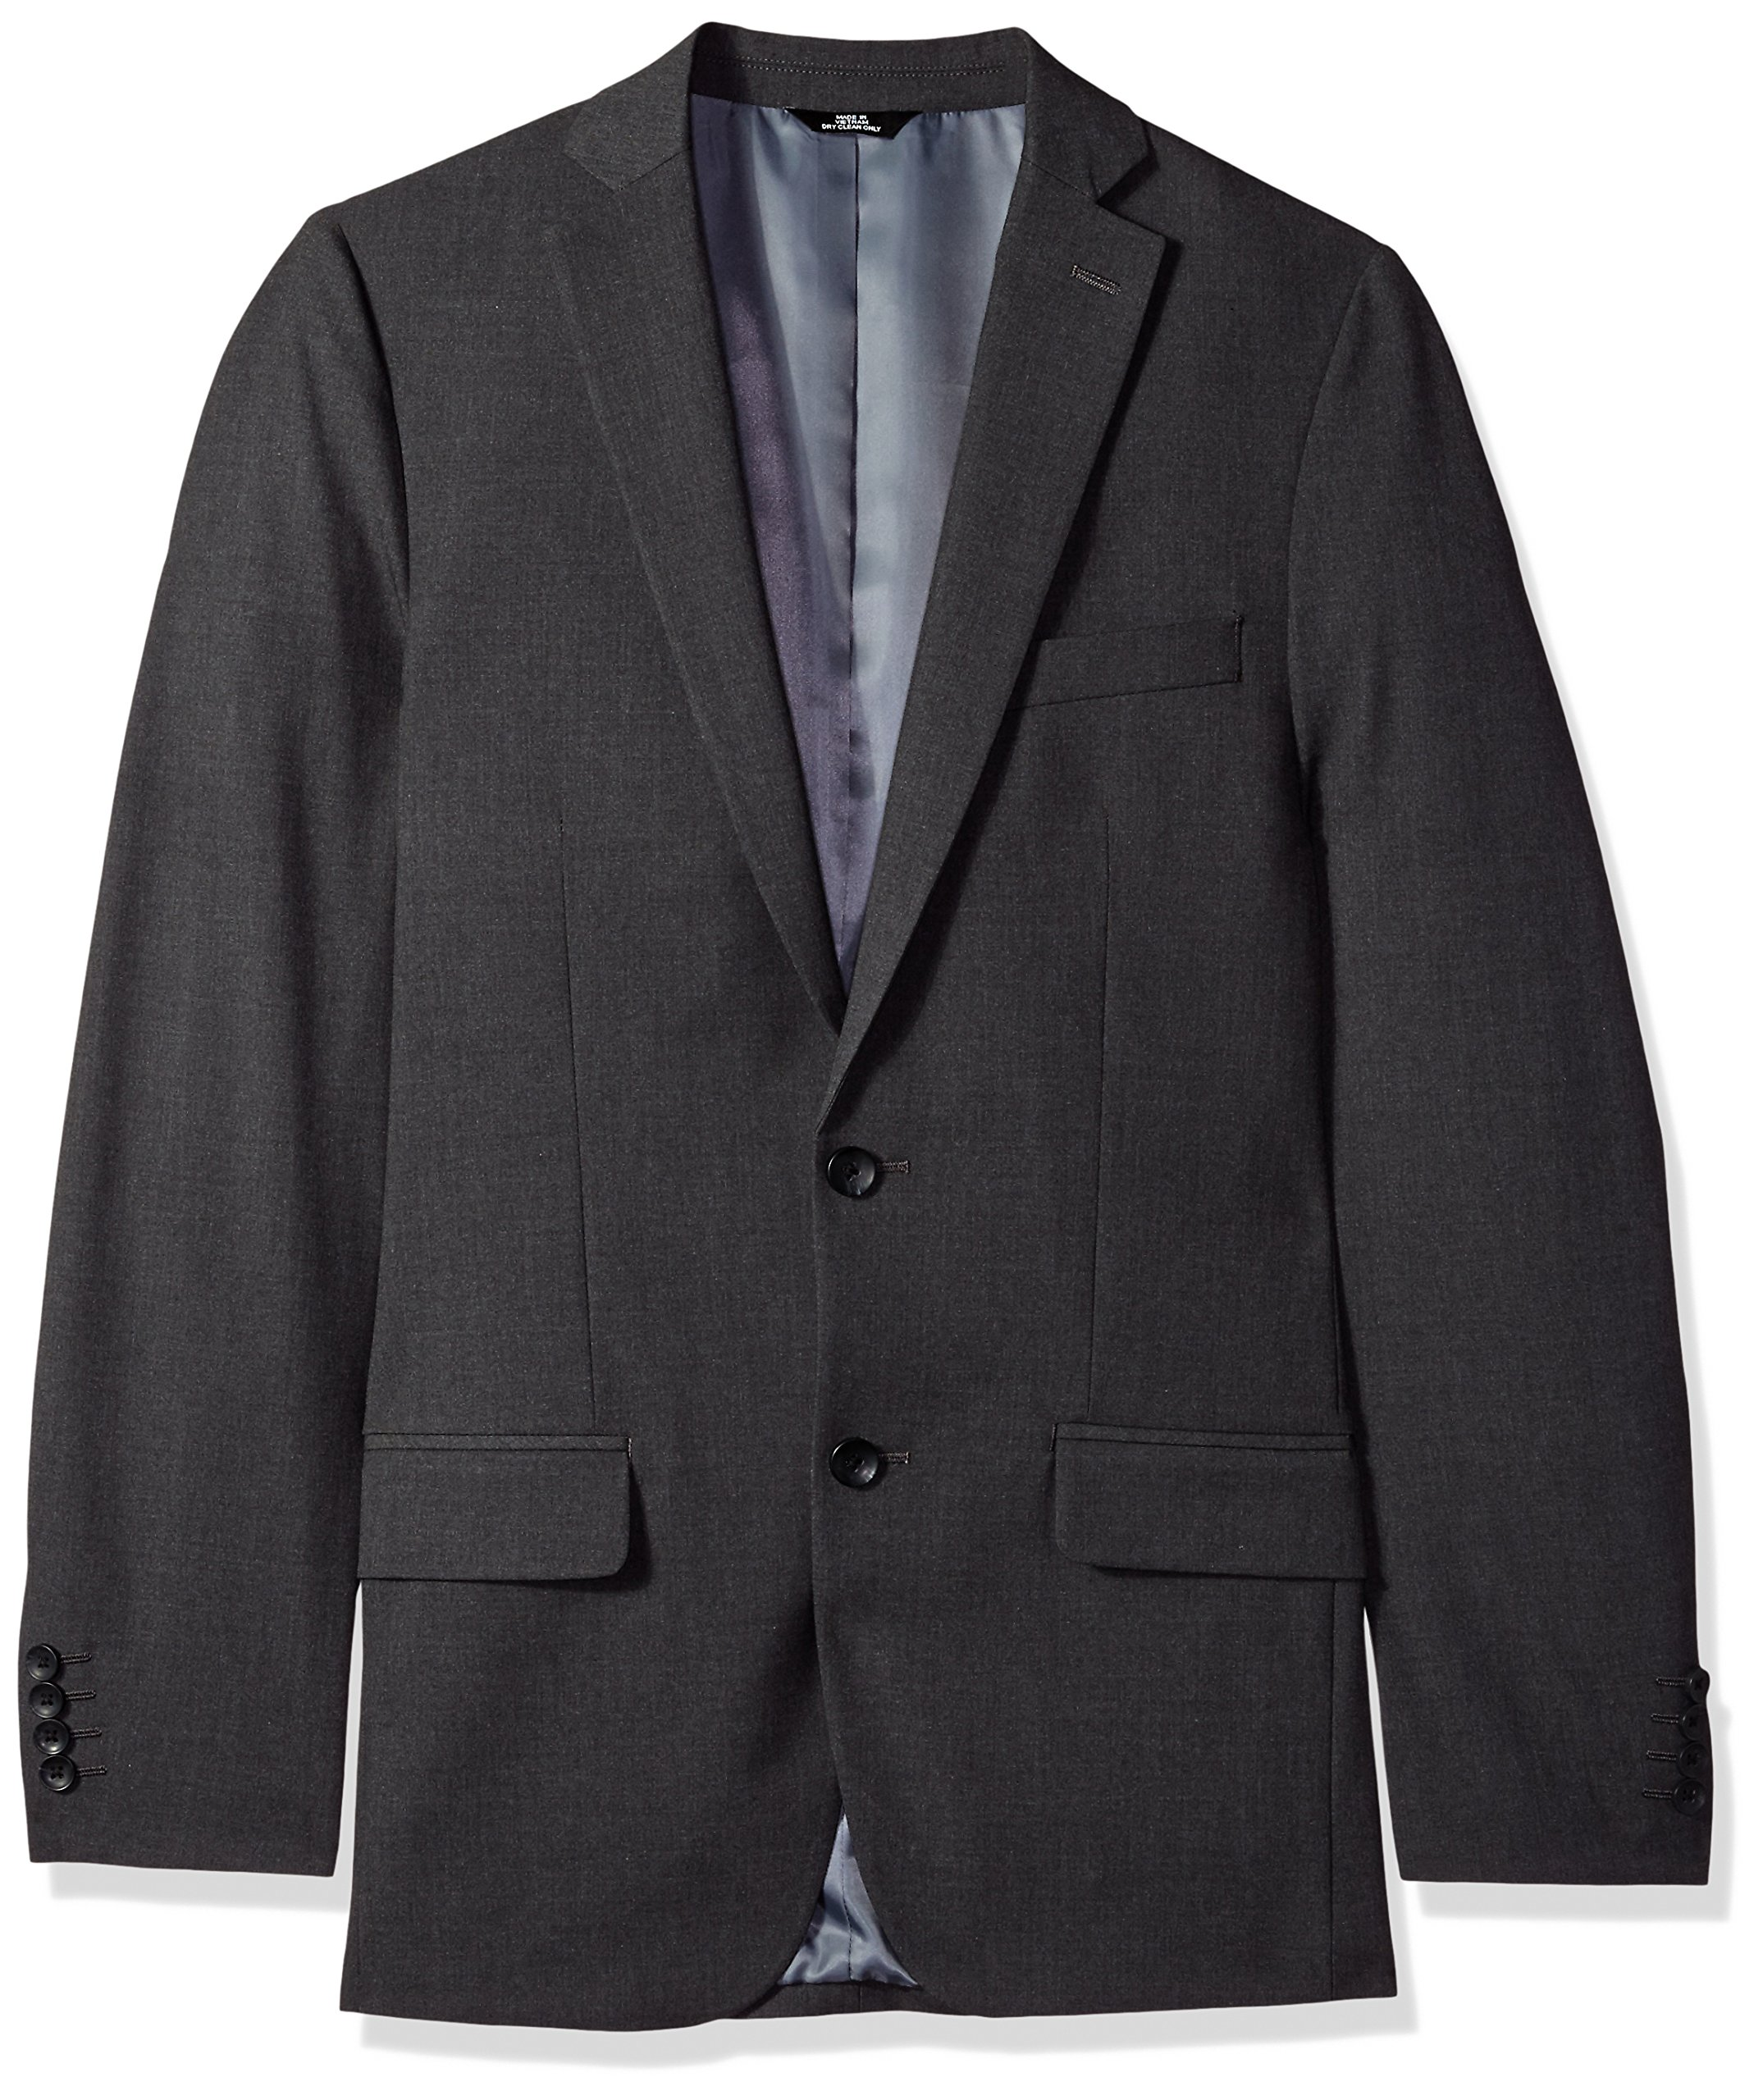 J.M. Haggar 4-Way Stretch Solid 2-Button Slim Fit Suit Separate Coat,  Charcoal Heather,  42XL